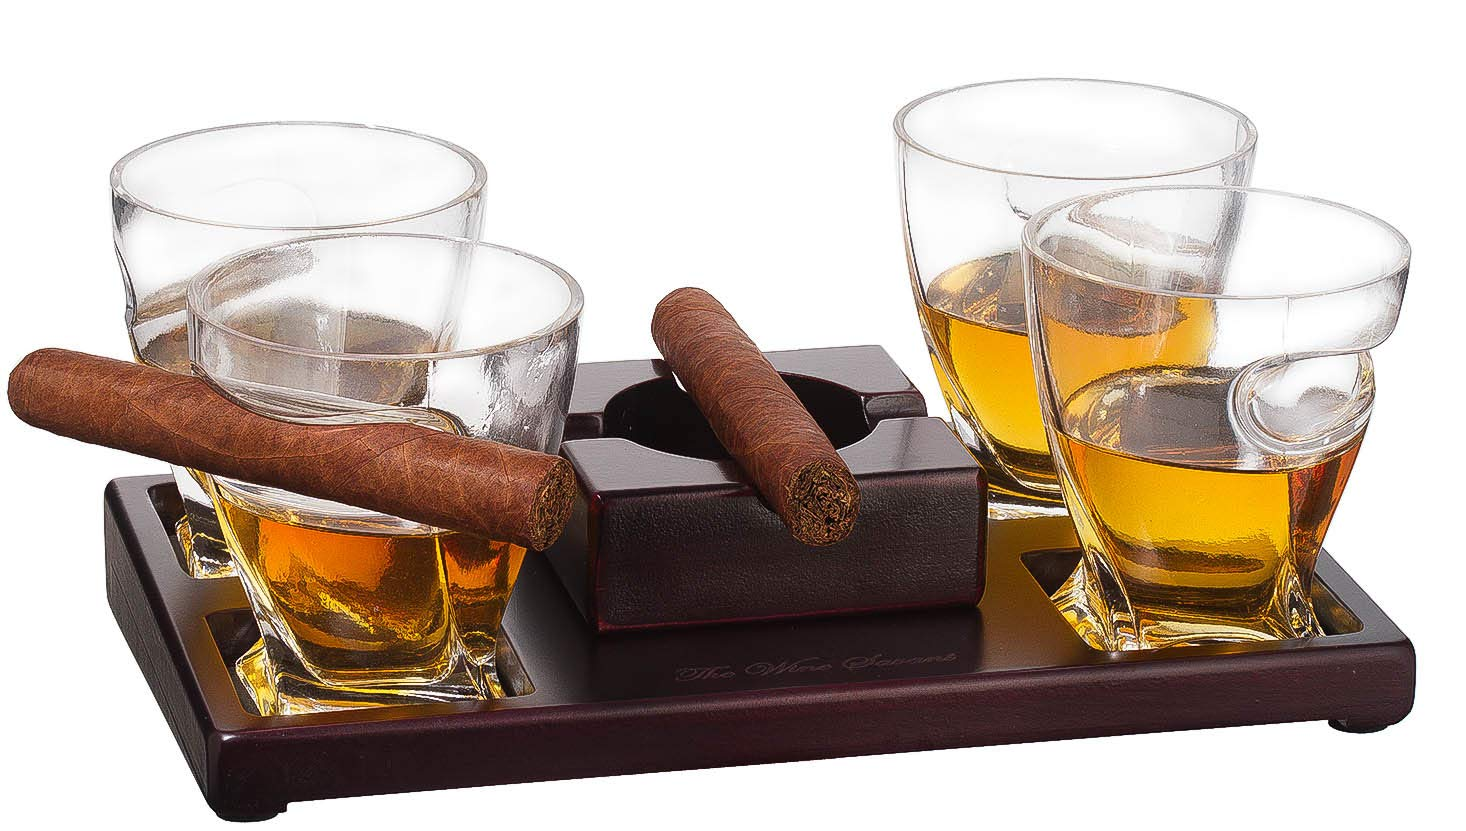 Cigar Holder Glasses Set, Old Fashioned Whiskey Tumbler with Ashtray and an Elegant Wood Base - The Wine Savant, Perfect for Resting Cigars and Sipping your Favorite Spirits